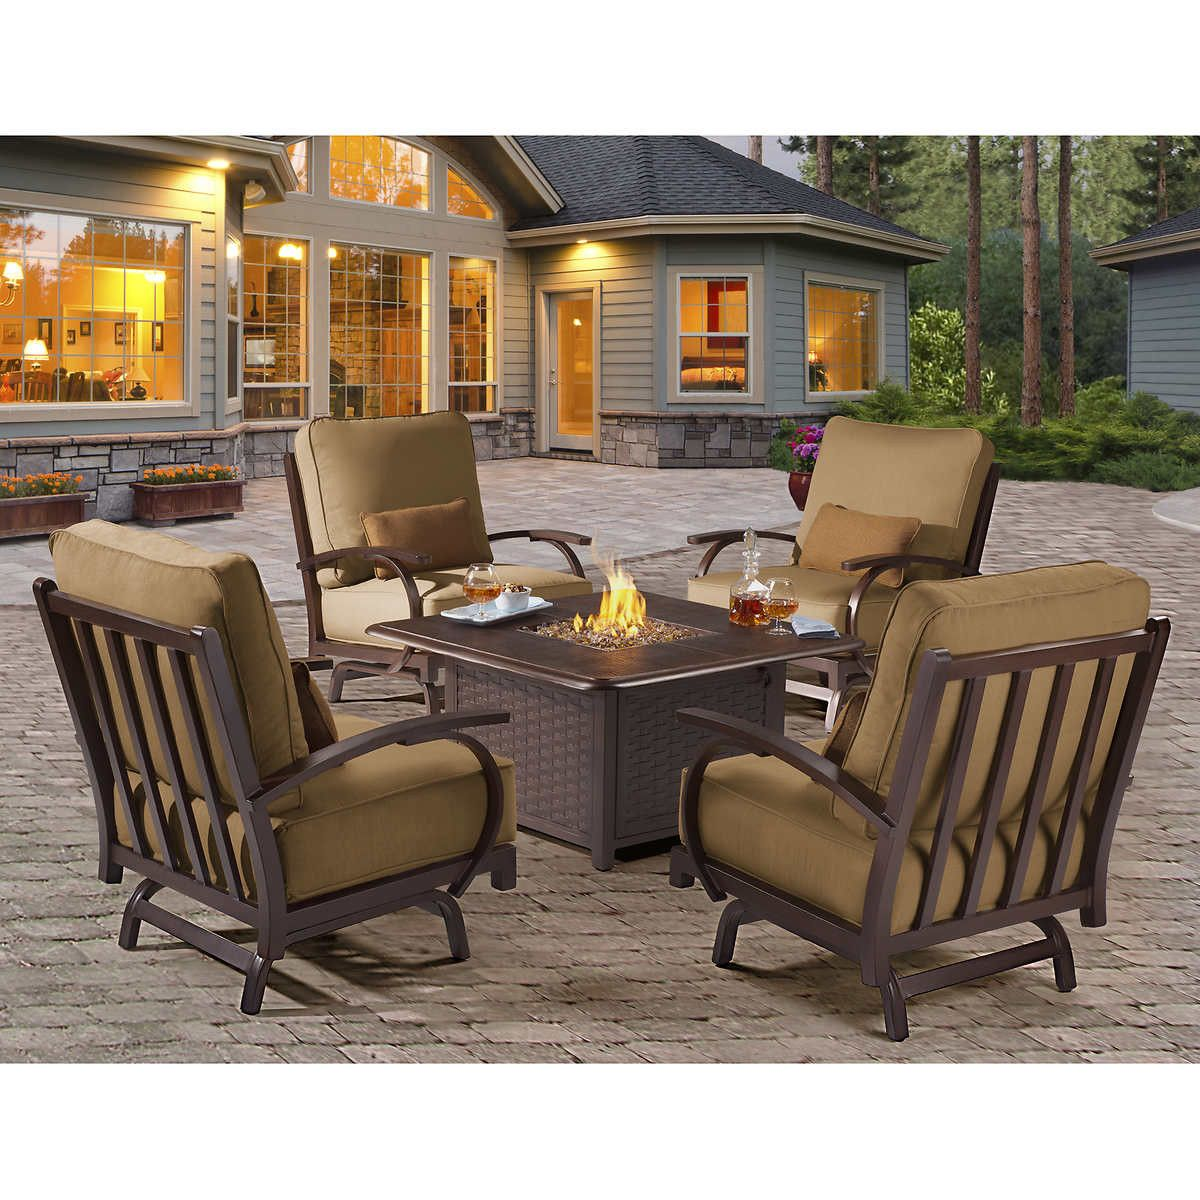 Costco fire pit table and chairs expensive home office furniture check more at http